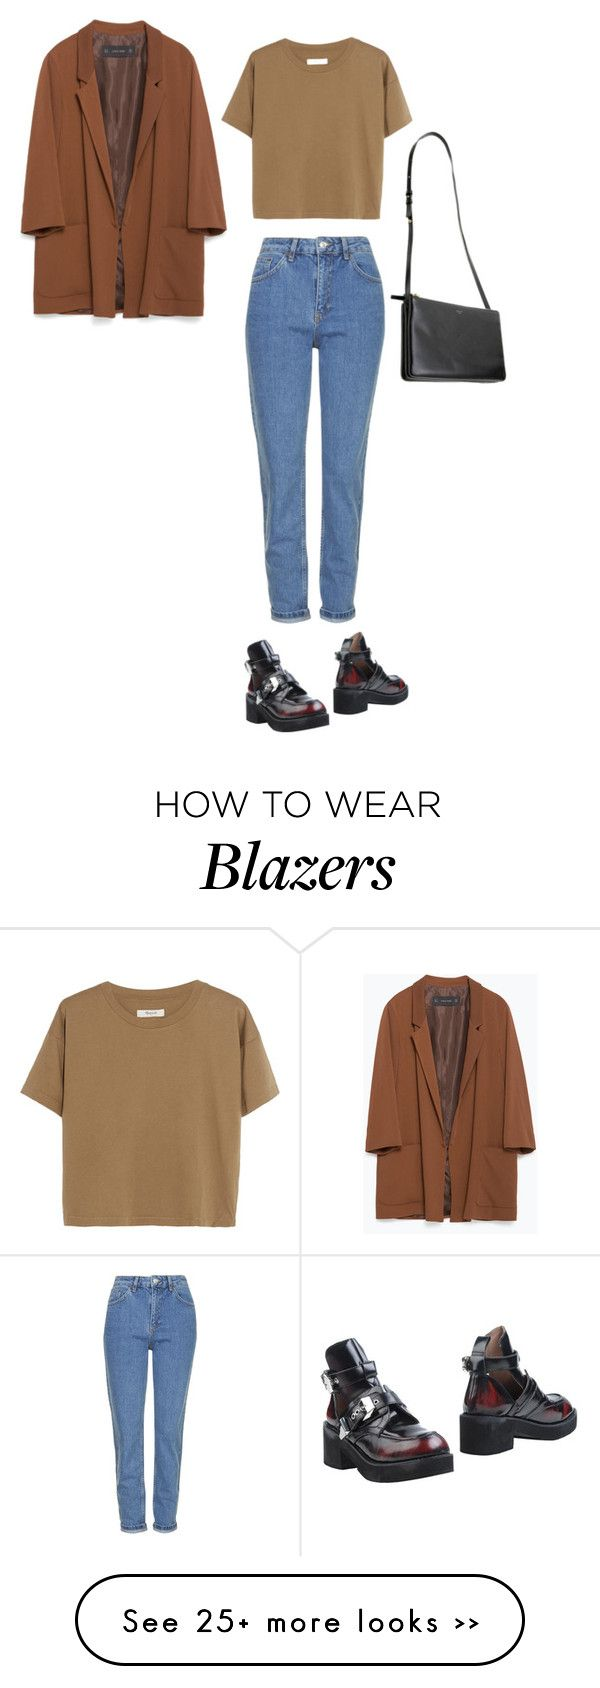 """Untitled #5176"" by dreamer-in-paris on Polyvore featuring Madewell, Topshop, Jeffrey Campbell and Zara"